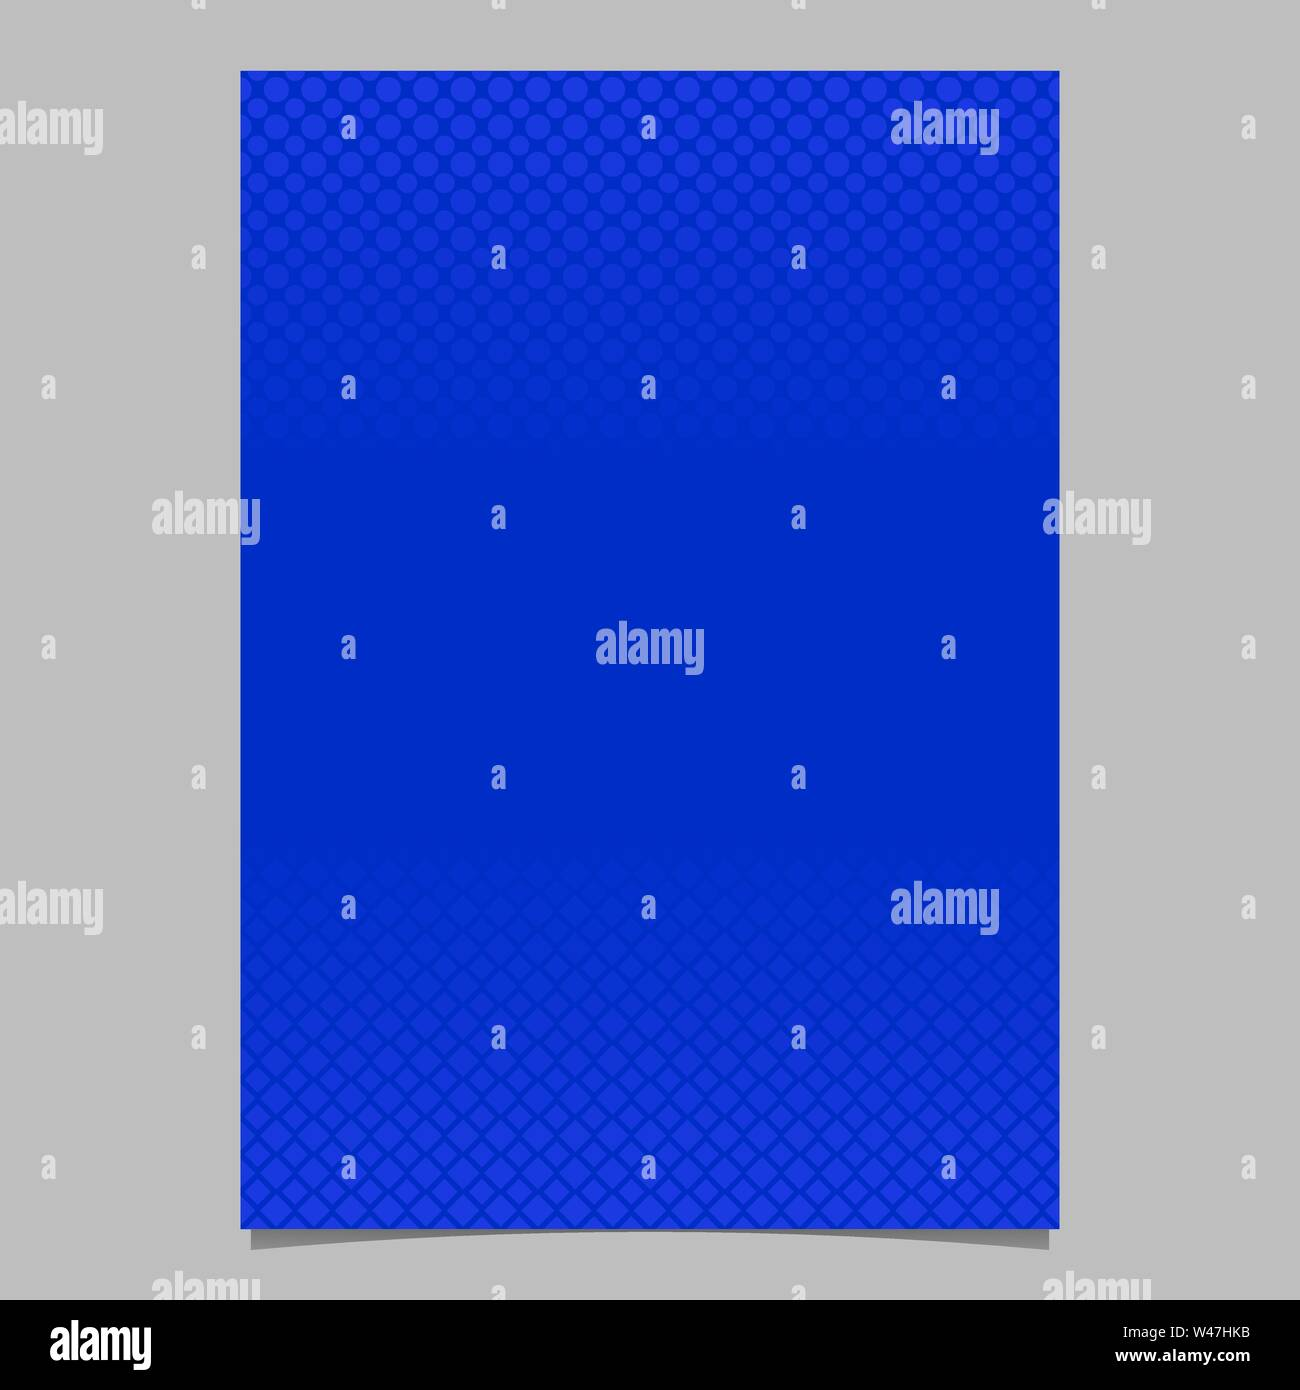 Blue abstract halftone geometric dot and square pattern brochure background template - vector design - Stock Image